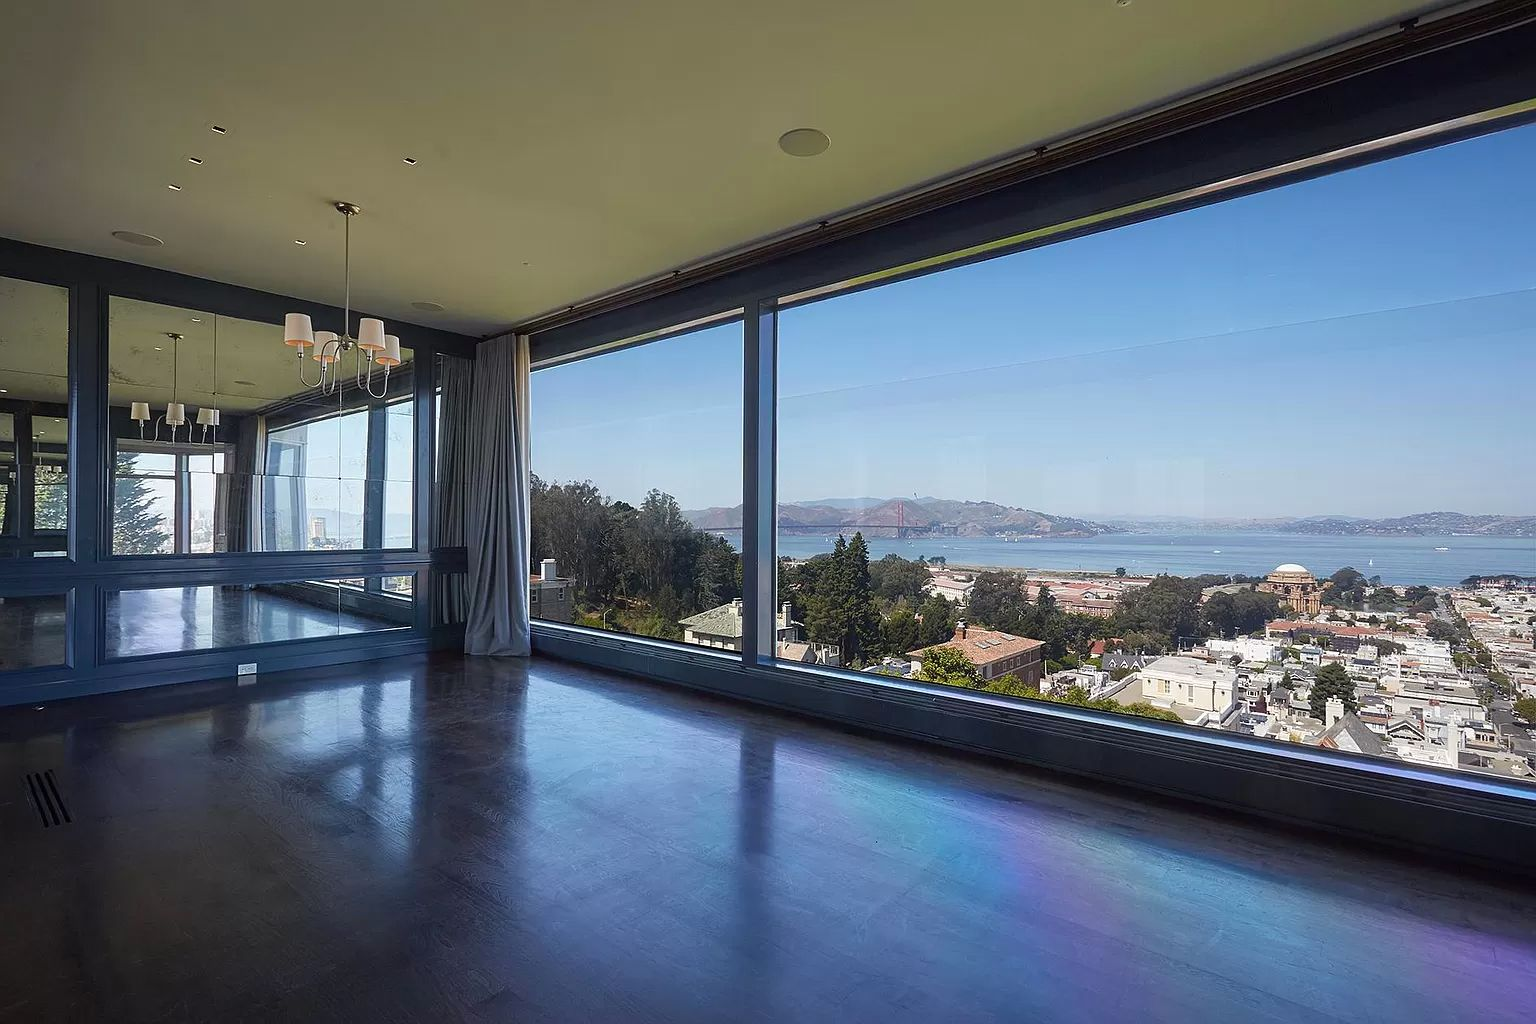 58c4d 2920 broadway dining view Seven Bedroom Pac Heights Mansion Sets New Record for Most Expensive Home Sold In SF at $43.5M